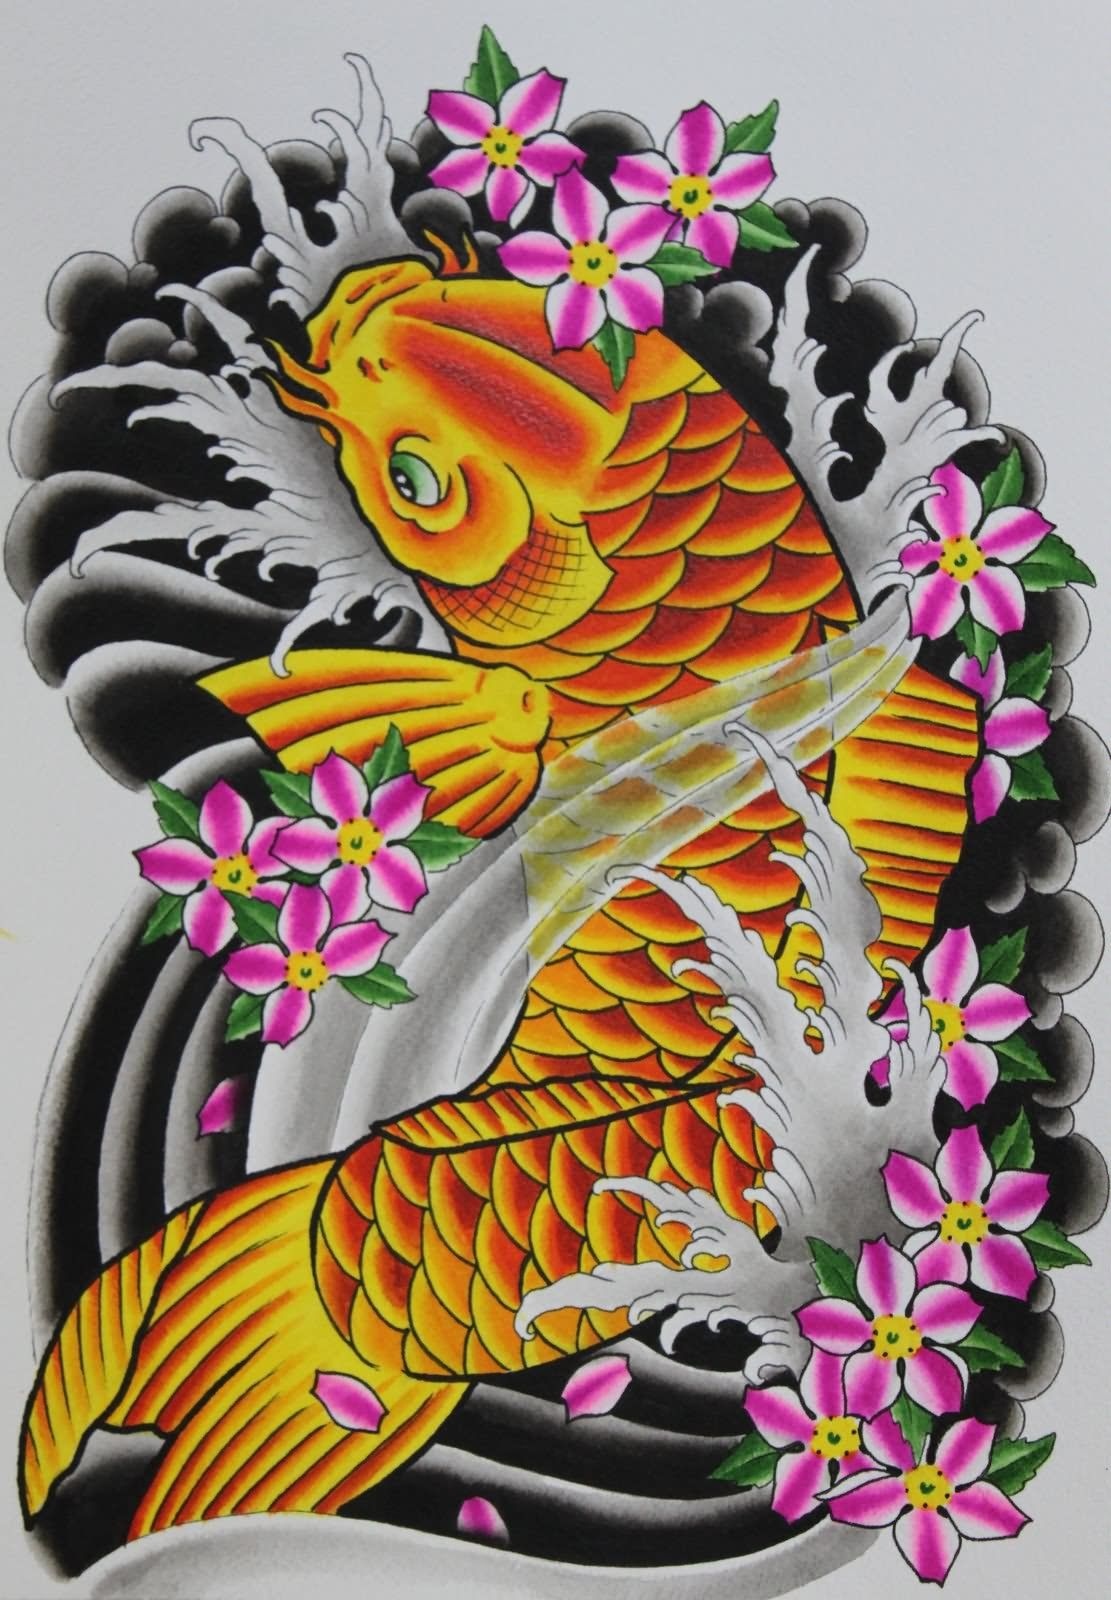 Yellow koi fish with pink flowers tattoo design Koi fish